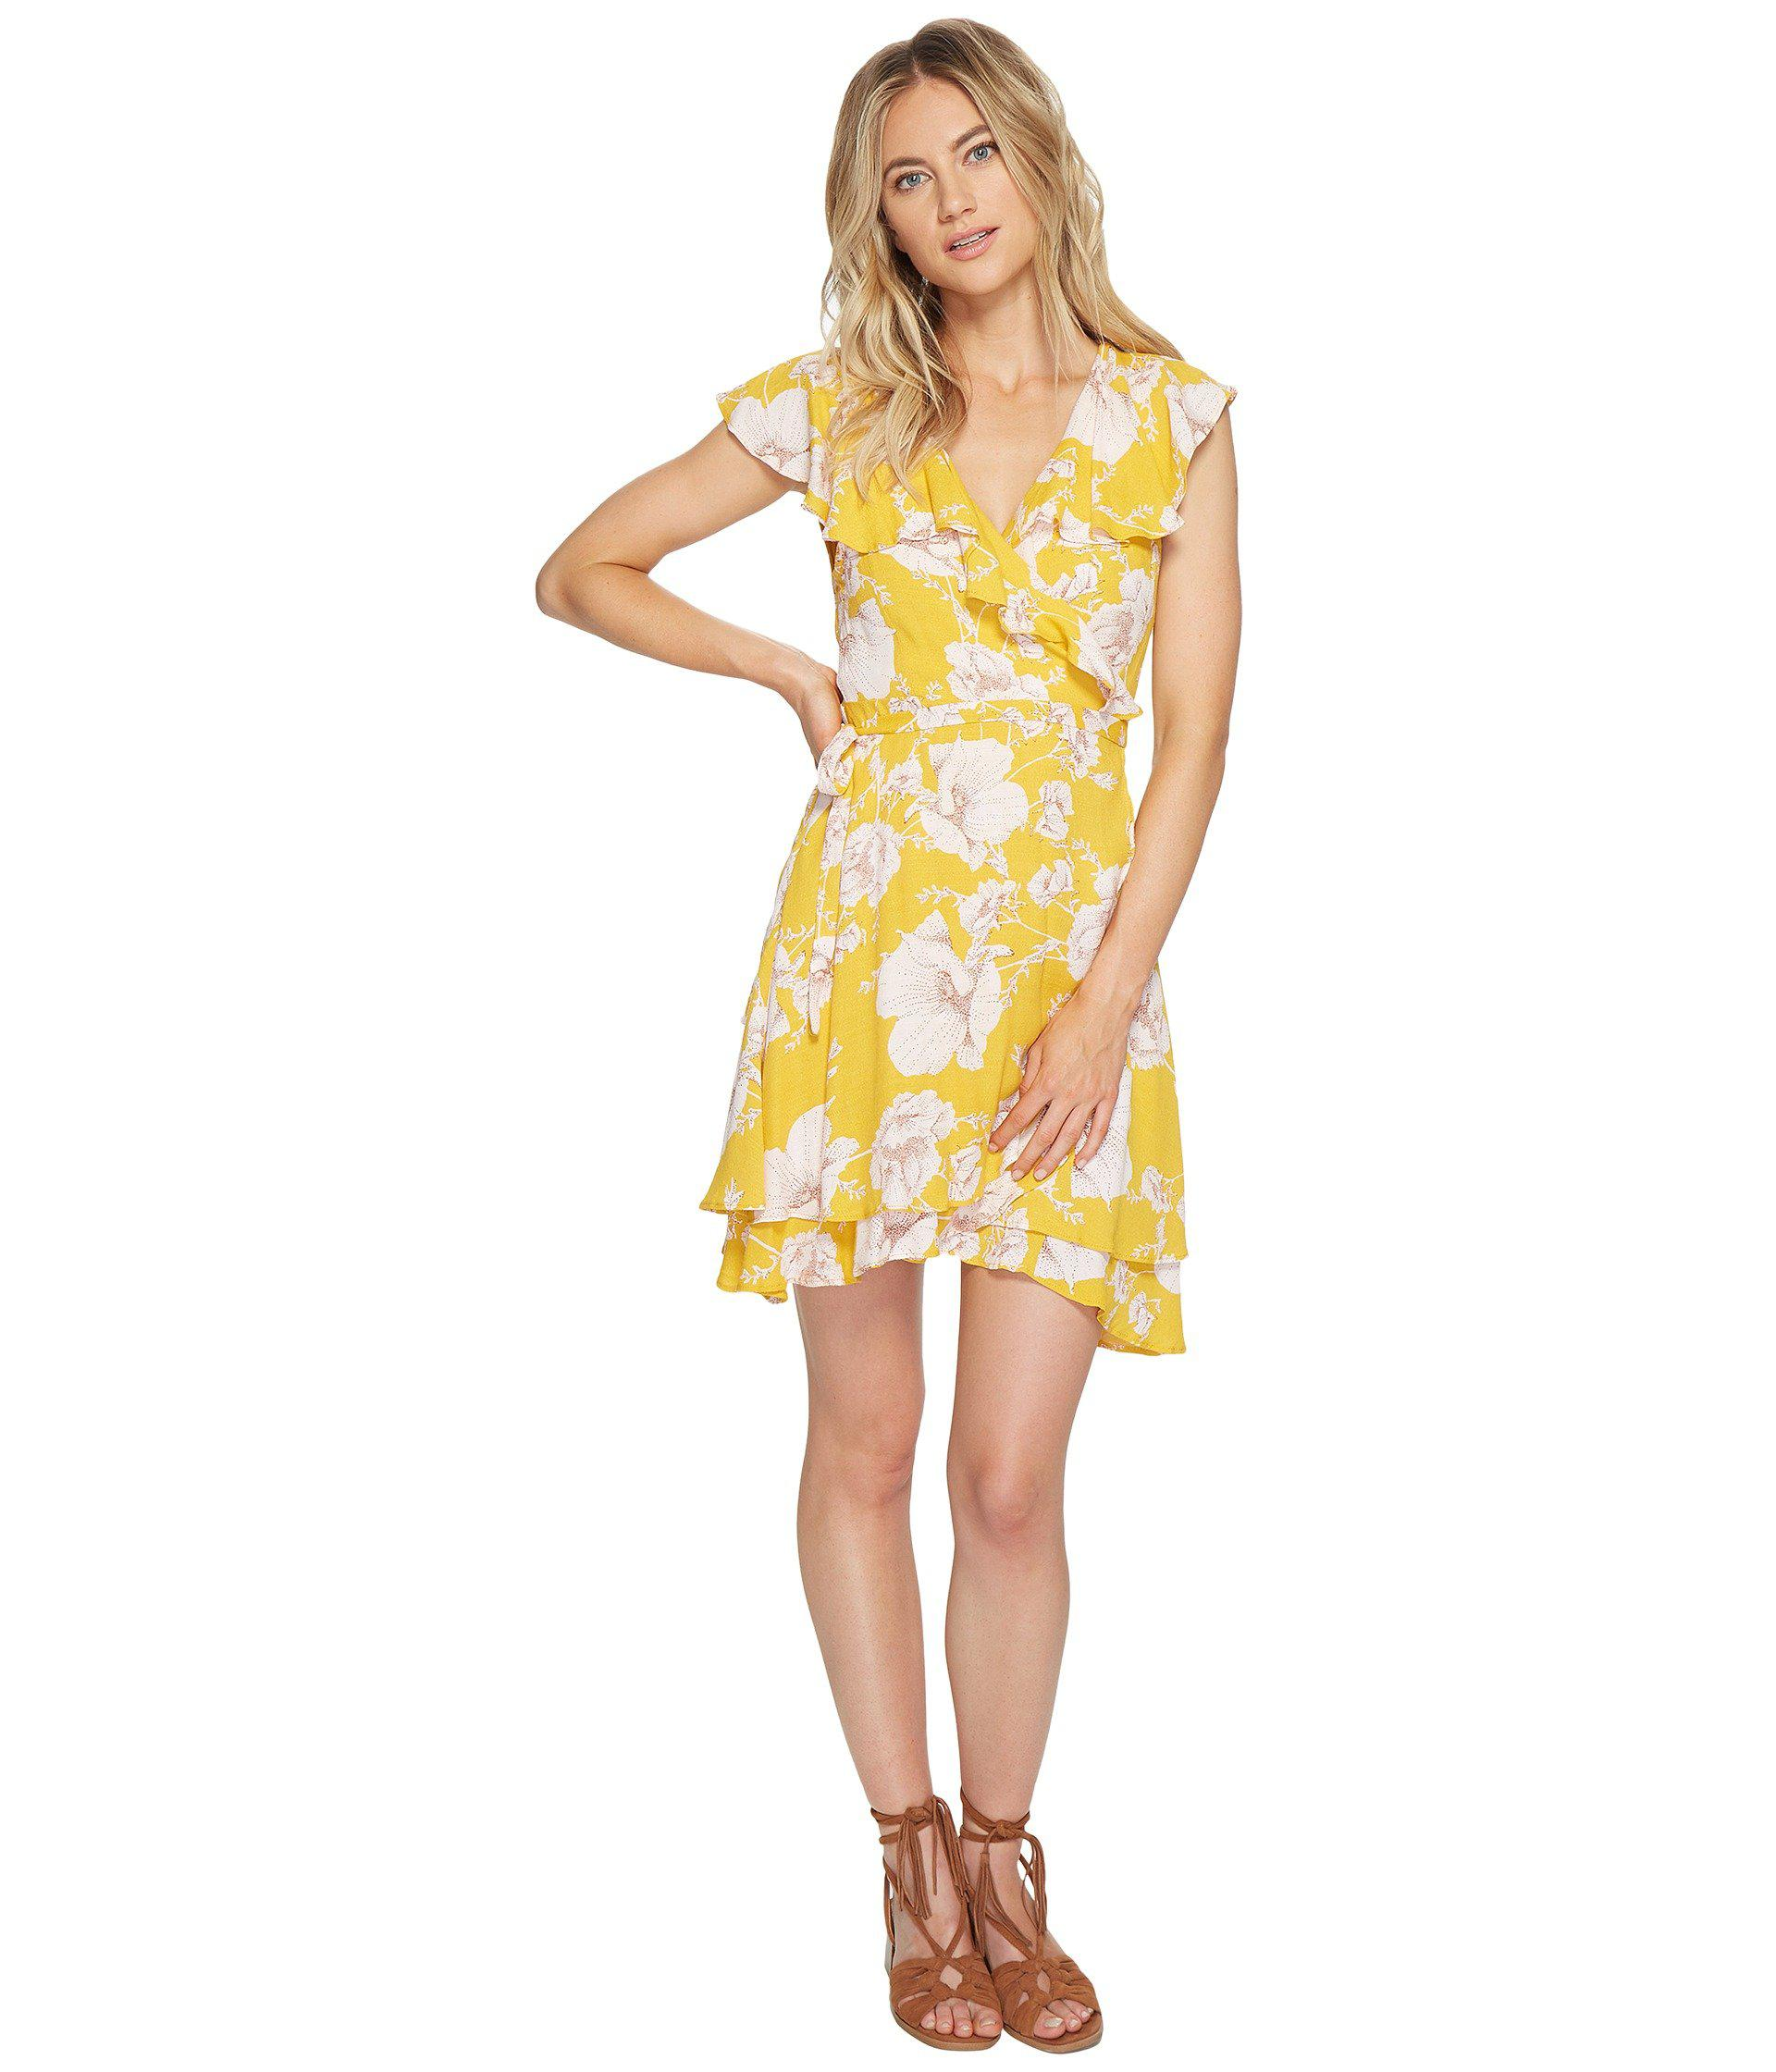 Swing Dress With Puff Sleeves - Yellow FRNCH Sale Online Cheap ooBze7O